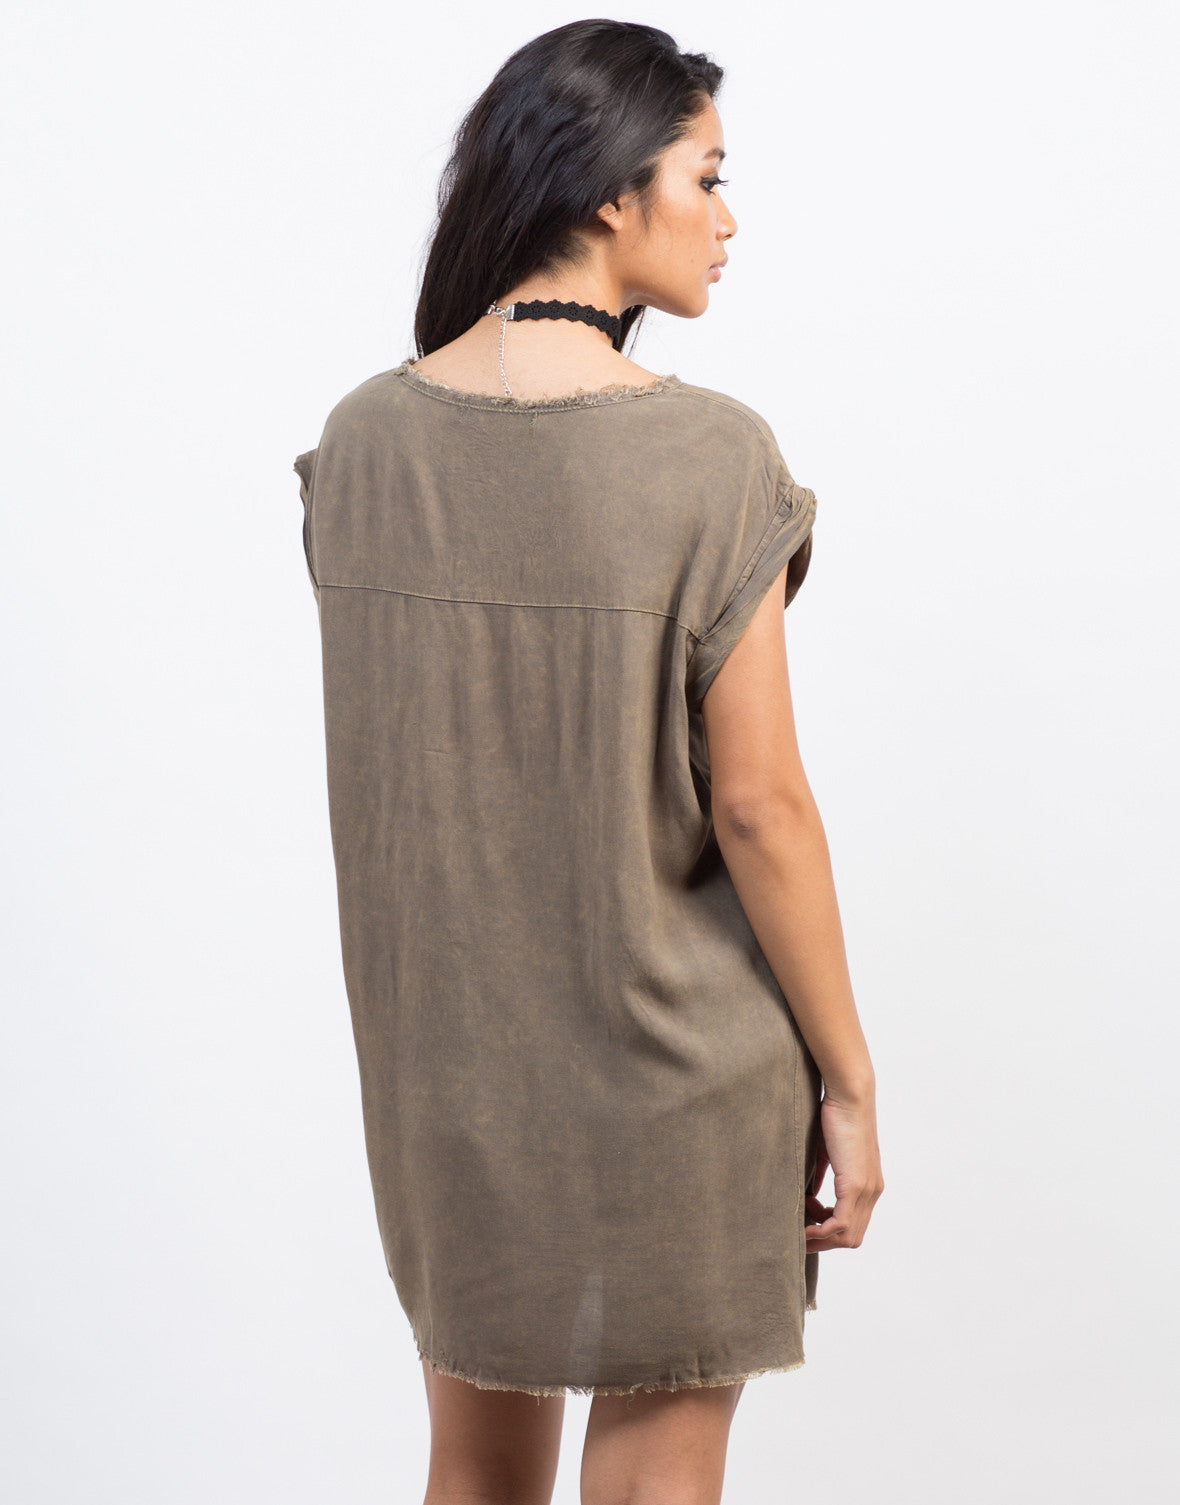 Back View of Frayed Oversize Top